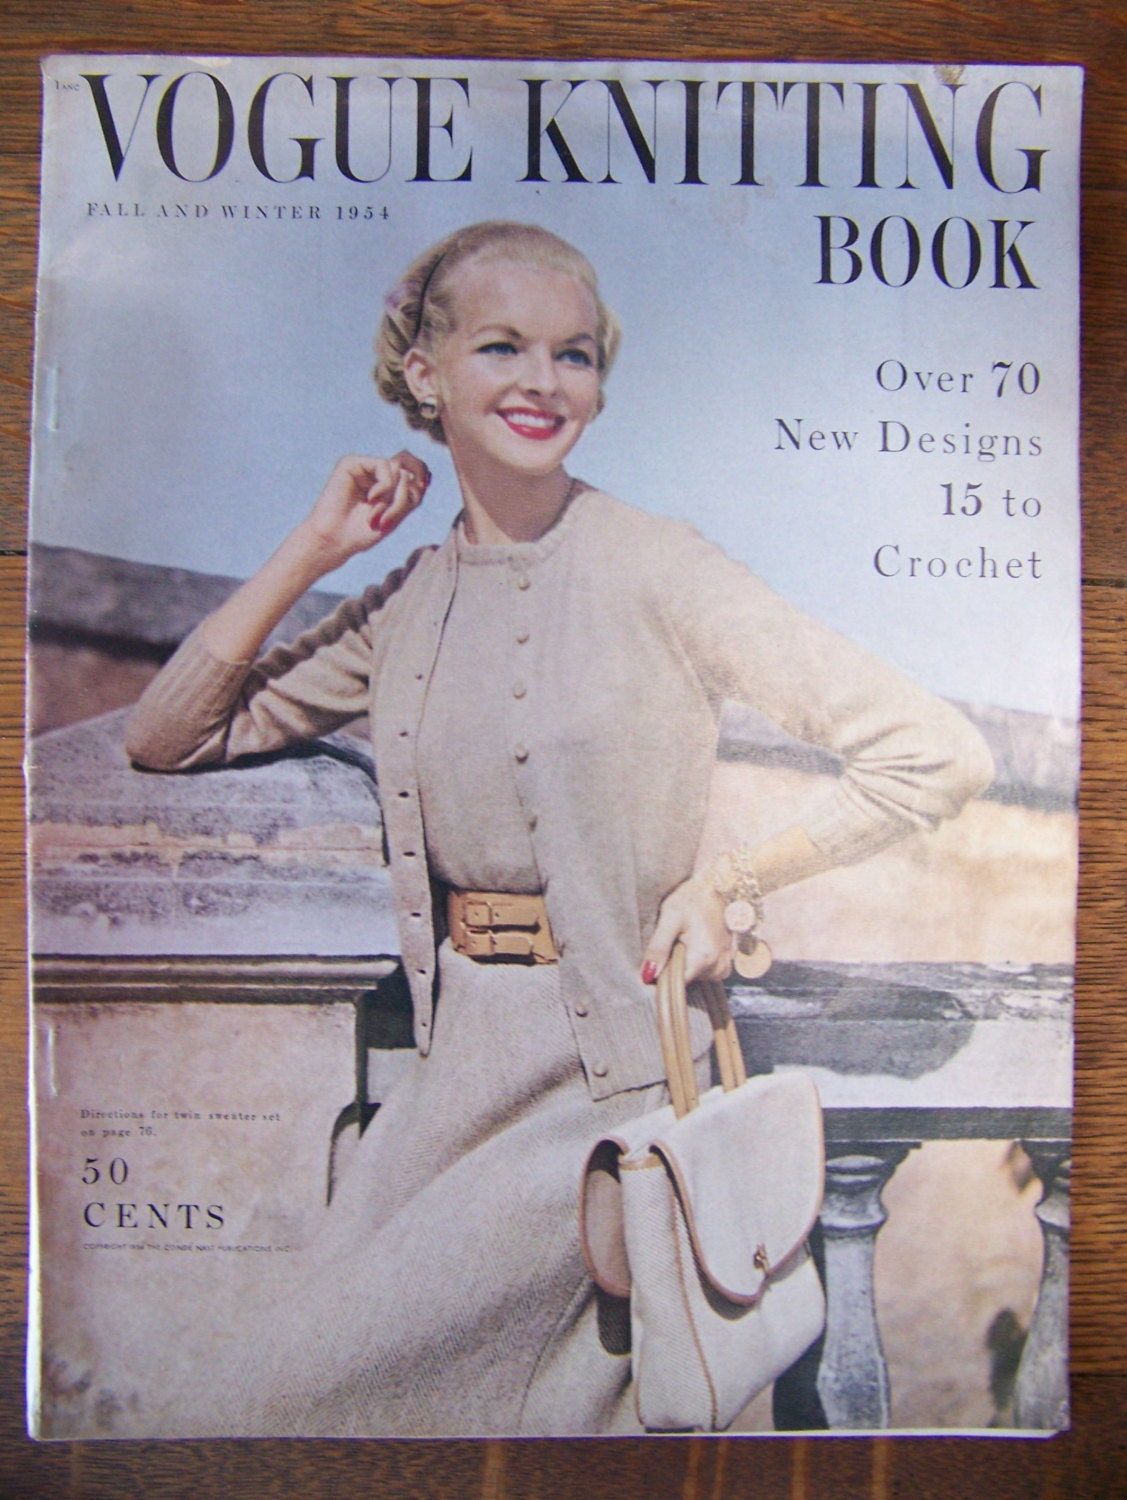 Vintage vogue knitting book 1954 fall and winterntage 1950s sold by lesaestes bankloansurffo Choice Image